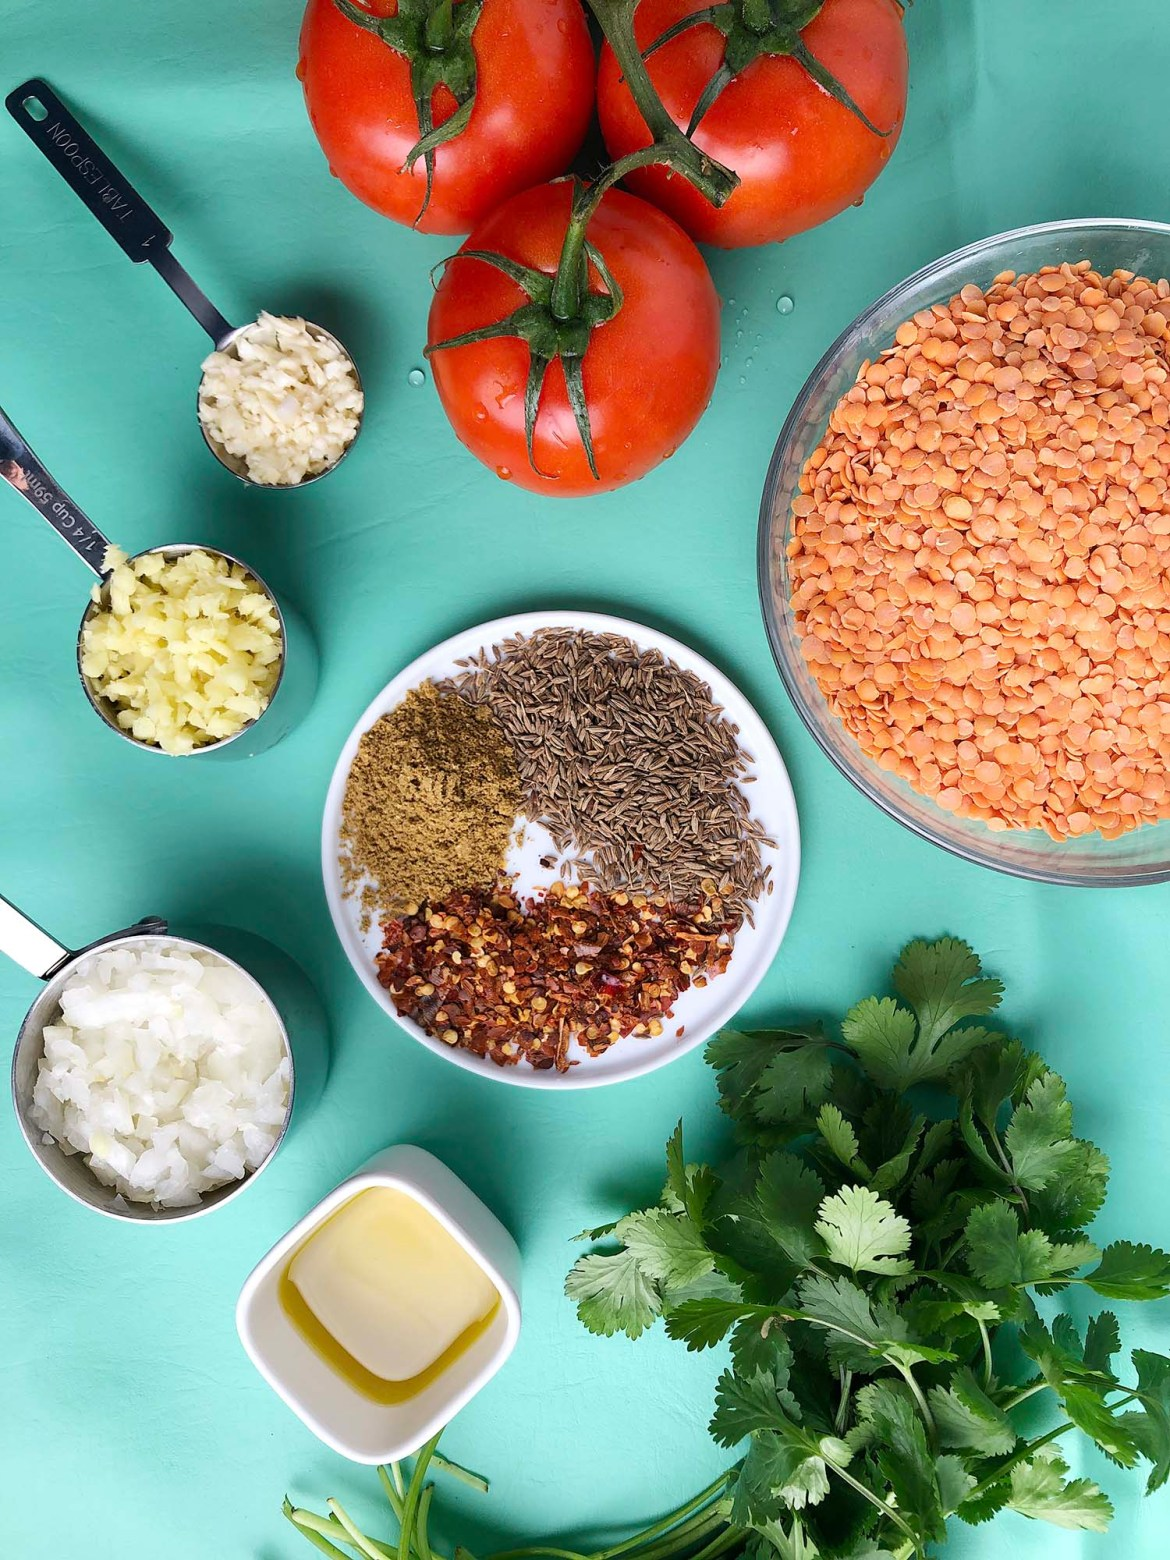 Top-down shot of ingredients in 1-Pot Red Lentils (Dal). Clockwise from the top: tomatoes, red lentils, fresh cilantro, olive oil, diced onion in a measuring cup, diced ginger in a measuring cup, diced garlic in a tablespoon, a white plate with dried spices: cumin seeds, red pepper flakes, coriander powder.